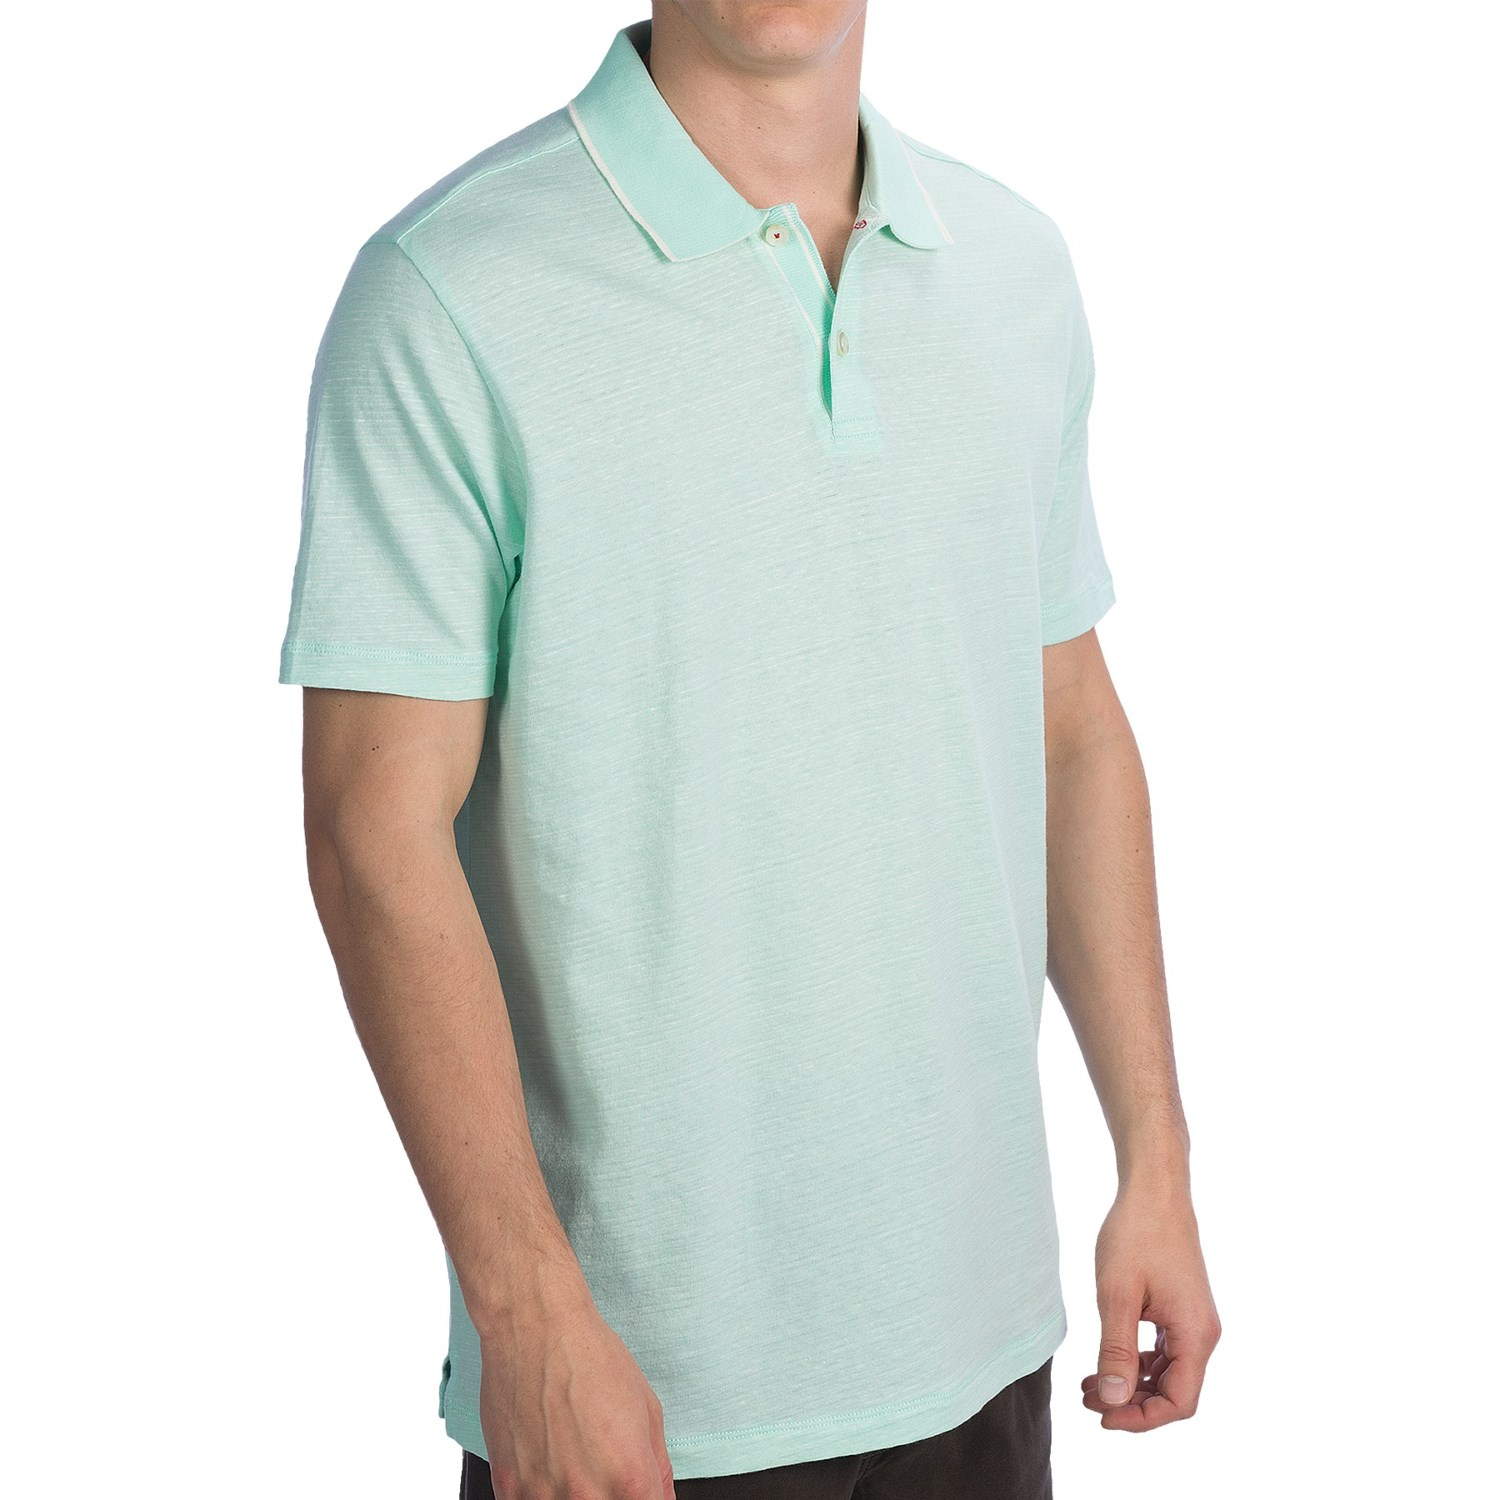 Tommy Bahama Vespa Polo Shirt Cotton Linen Short Sleeve